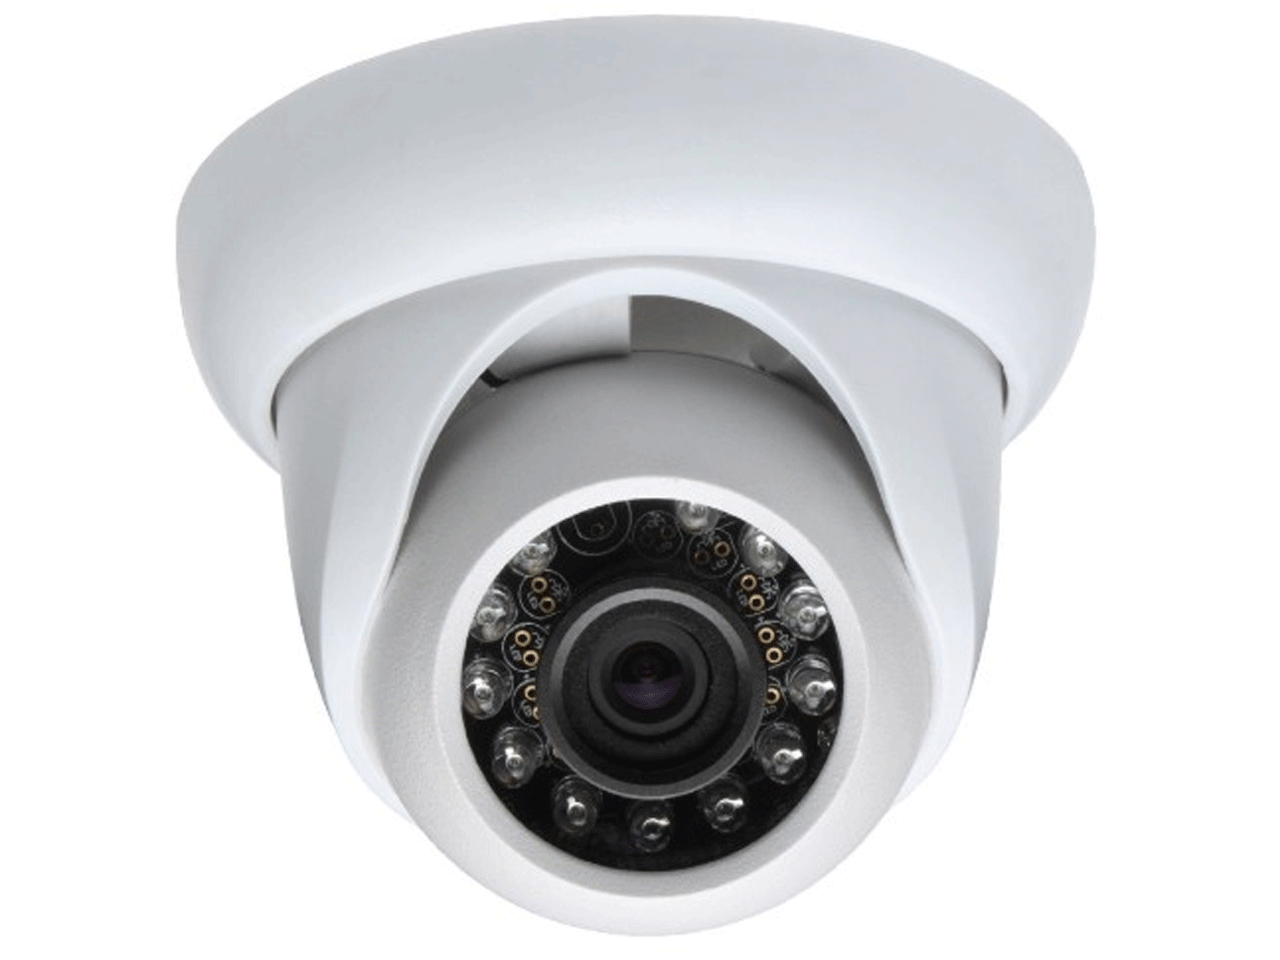 HAC-HDW2100SP-0360B 1.3 MP 720P WATERPROOF IR DOME HD-CVI KAMERA